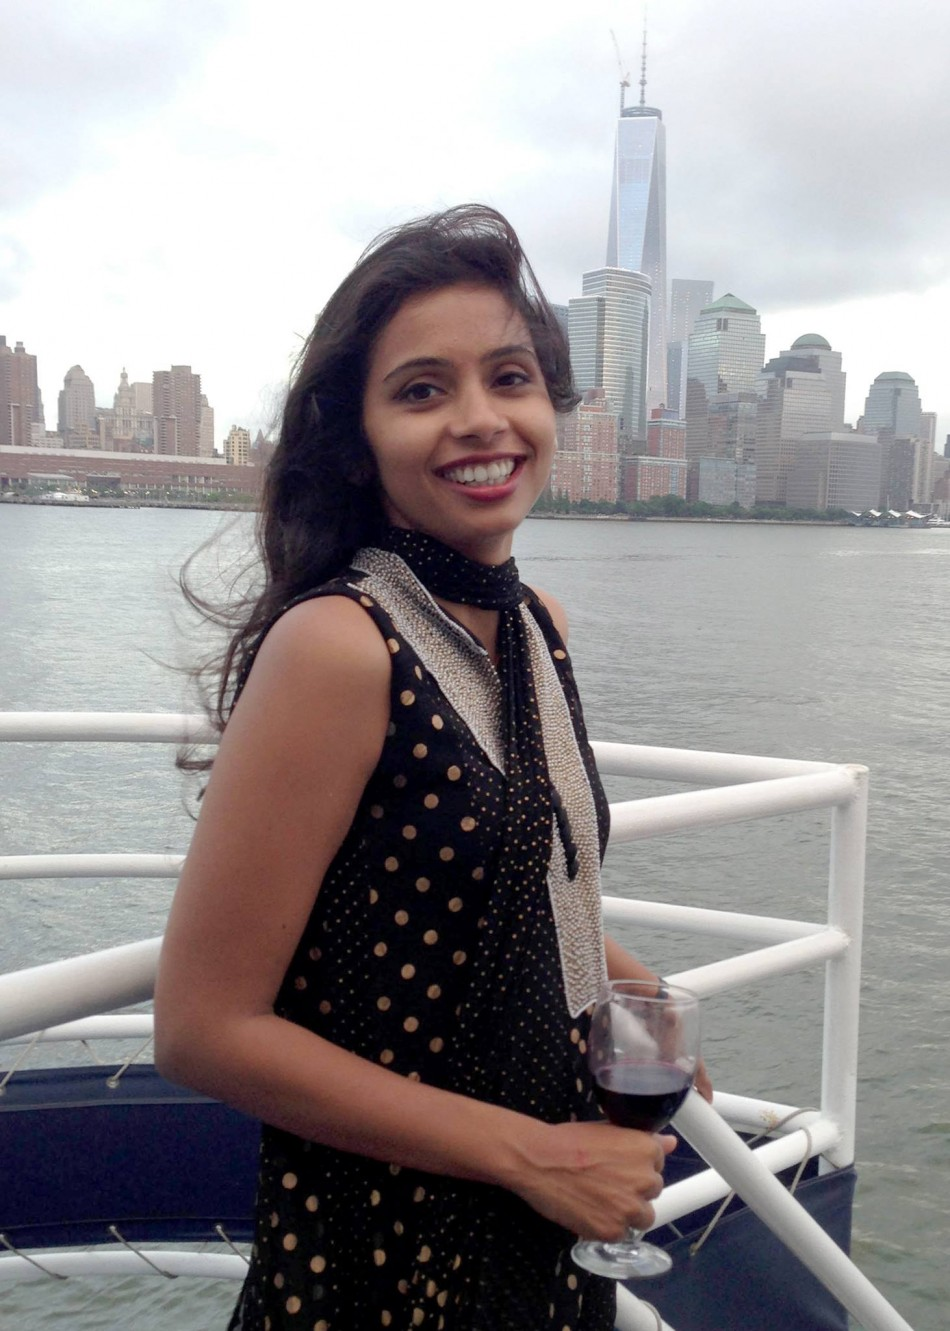 devyani khobragade Devyani khobragade, an indian diplomat, was indicted on charges of visa fraud and making false statements in connection with her treatment of a domestic worker.